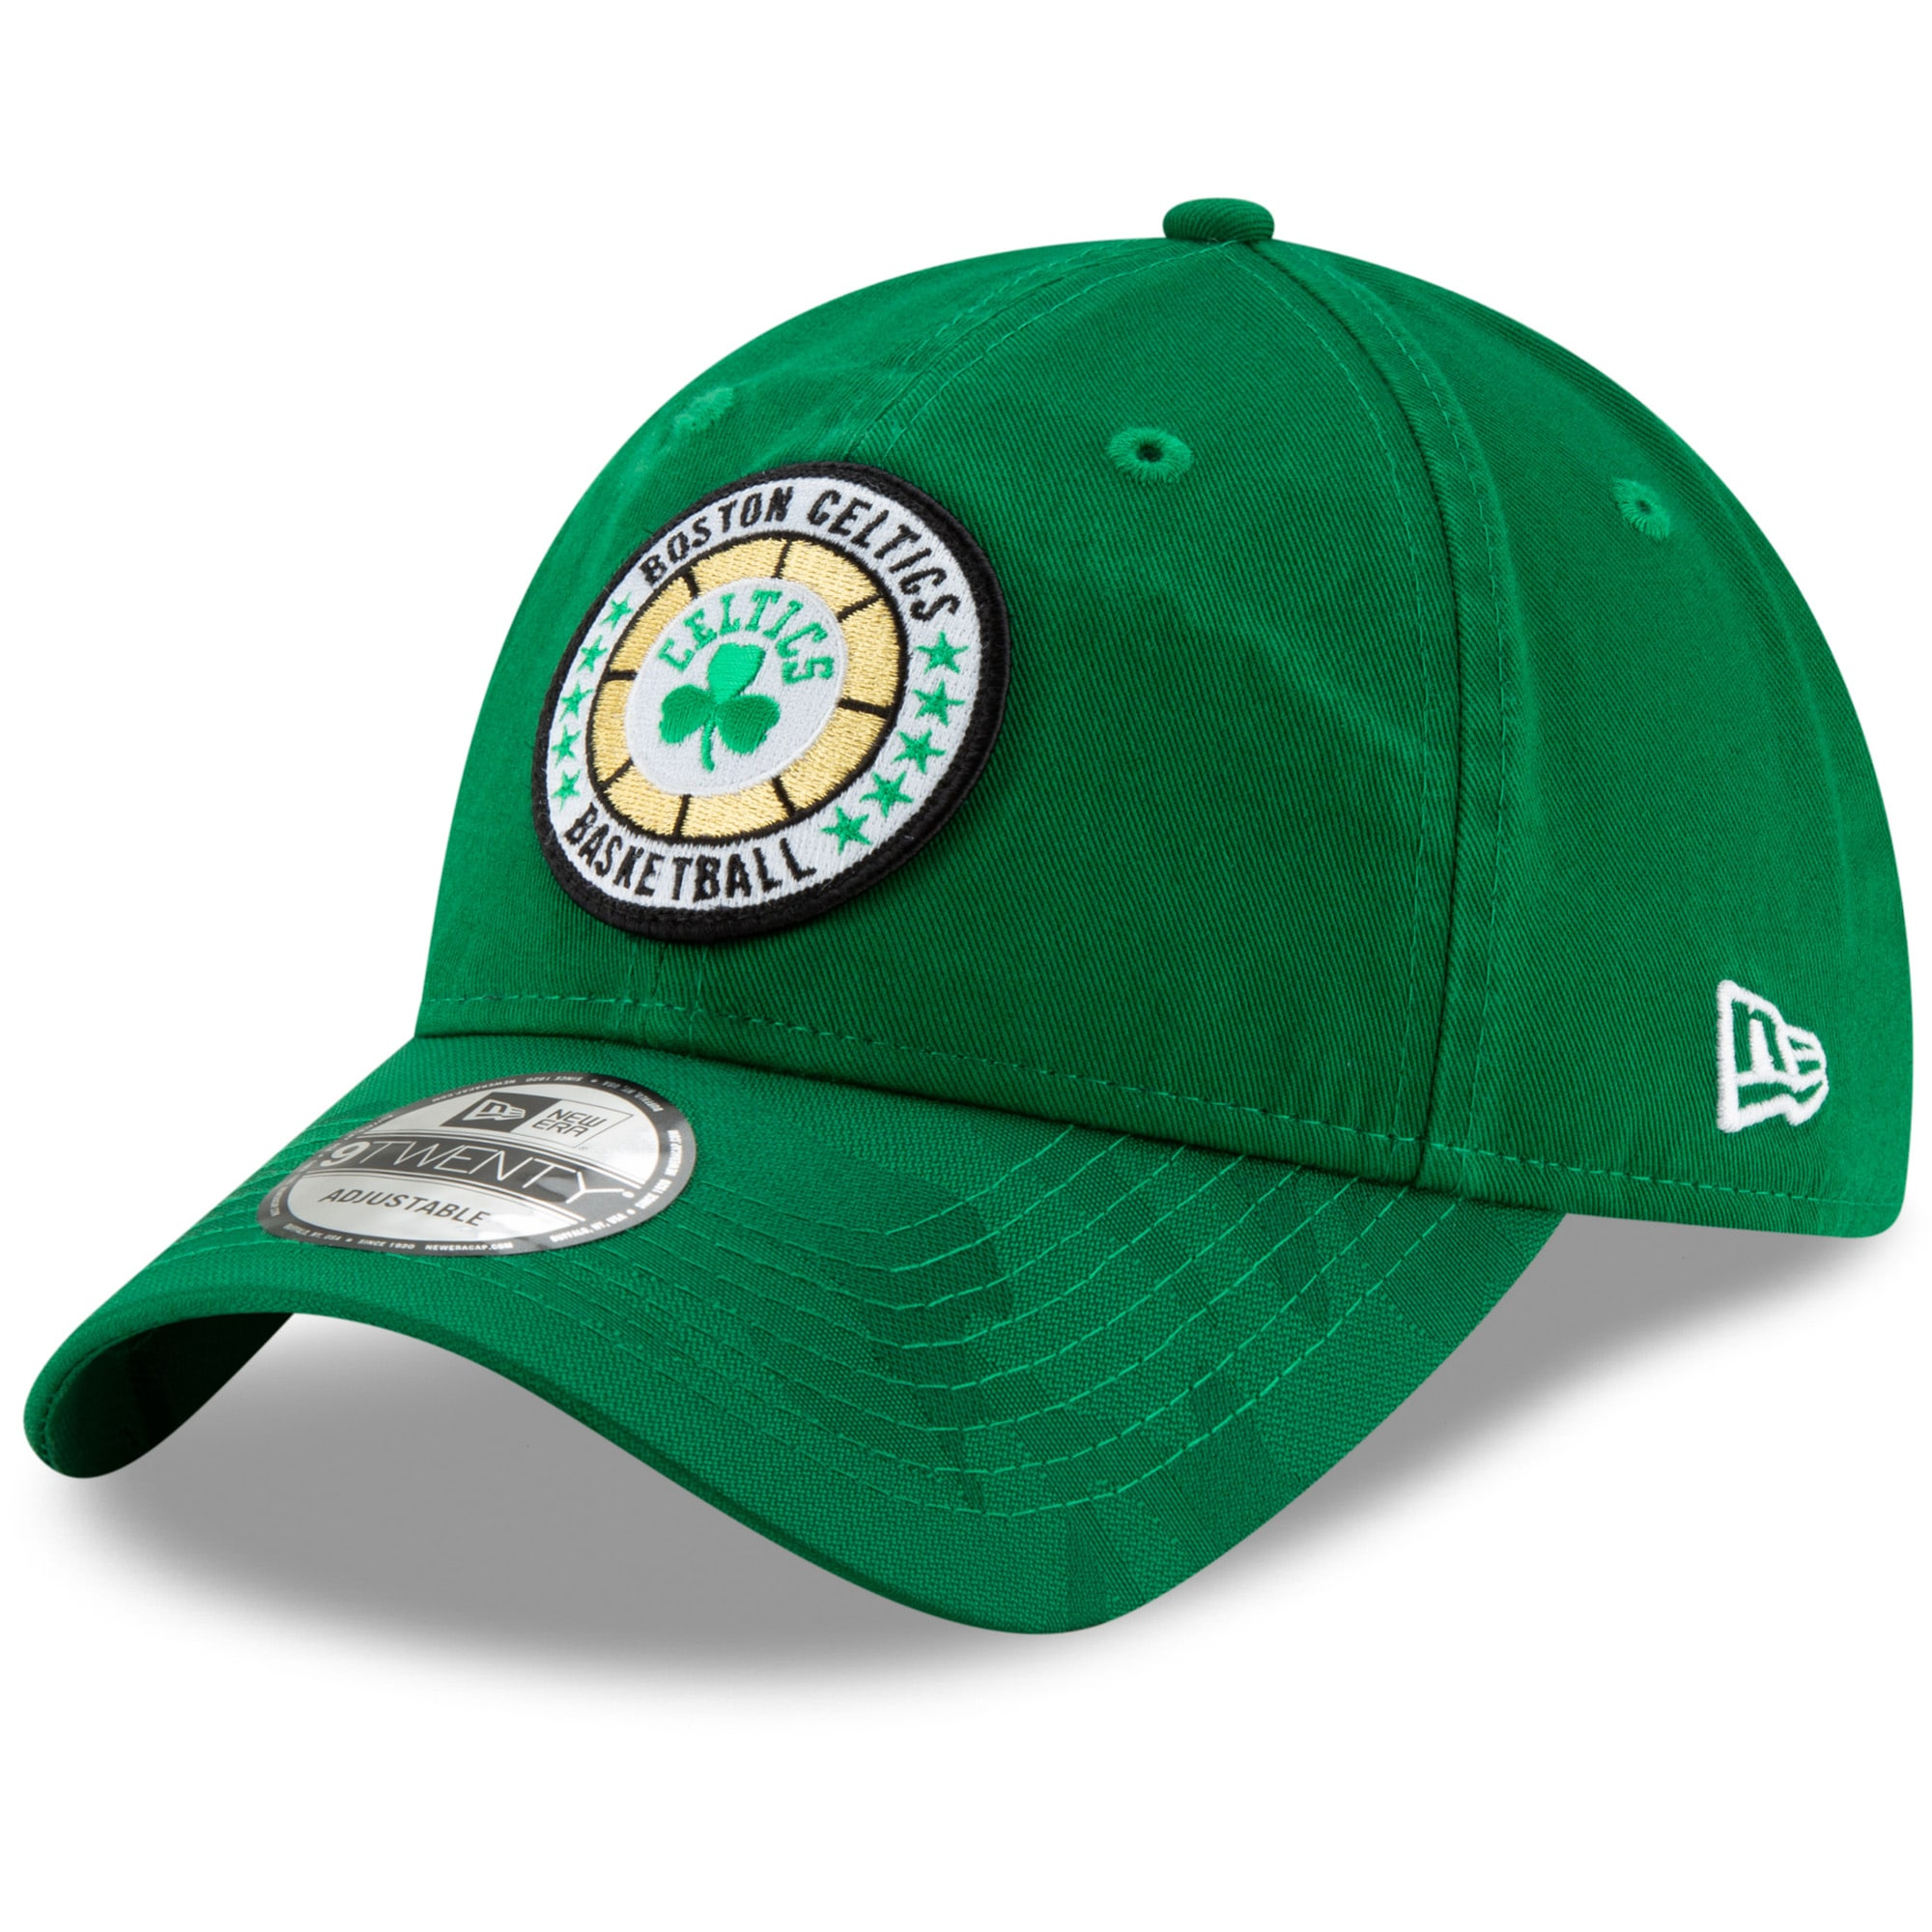 Boston Celtics New Era 2018 Tip-Off Series 9TWENTY Adjustable Hat - Kelly Green